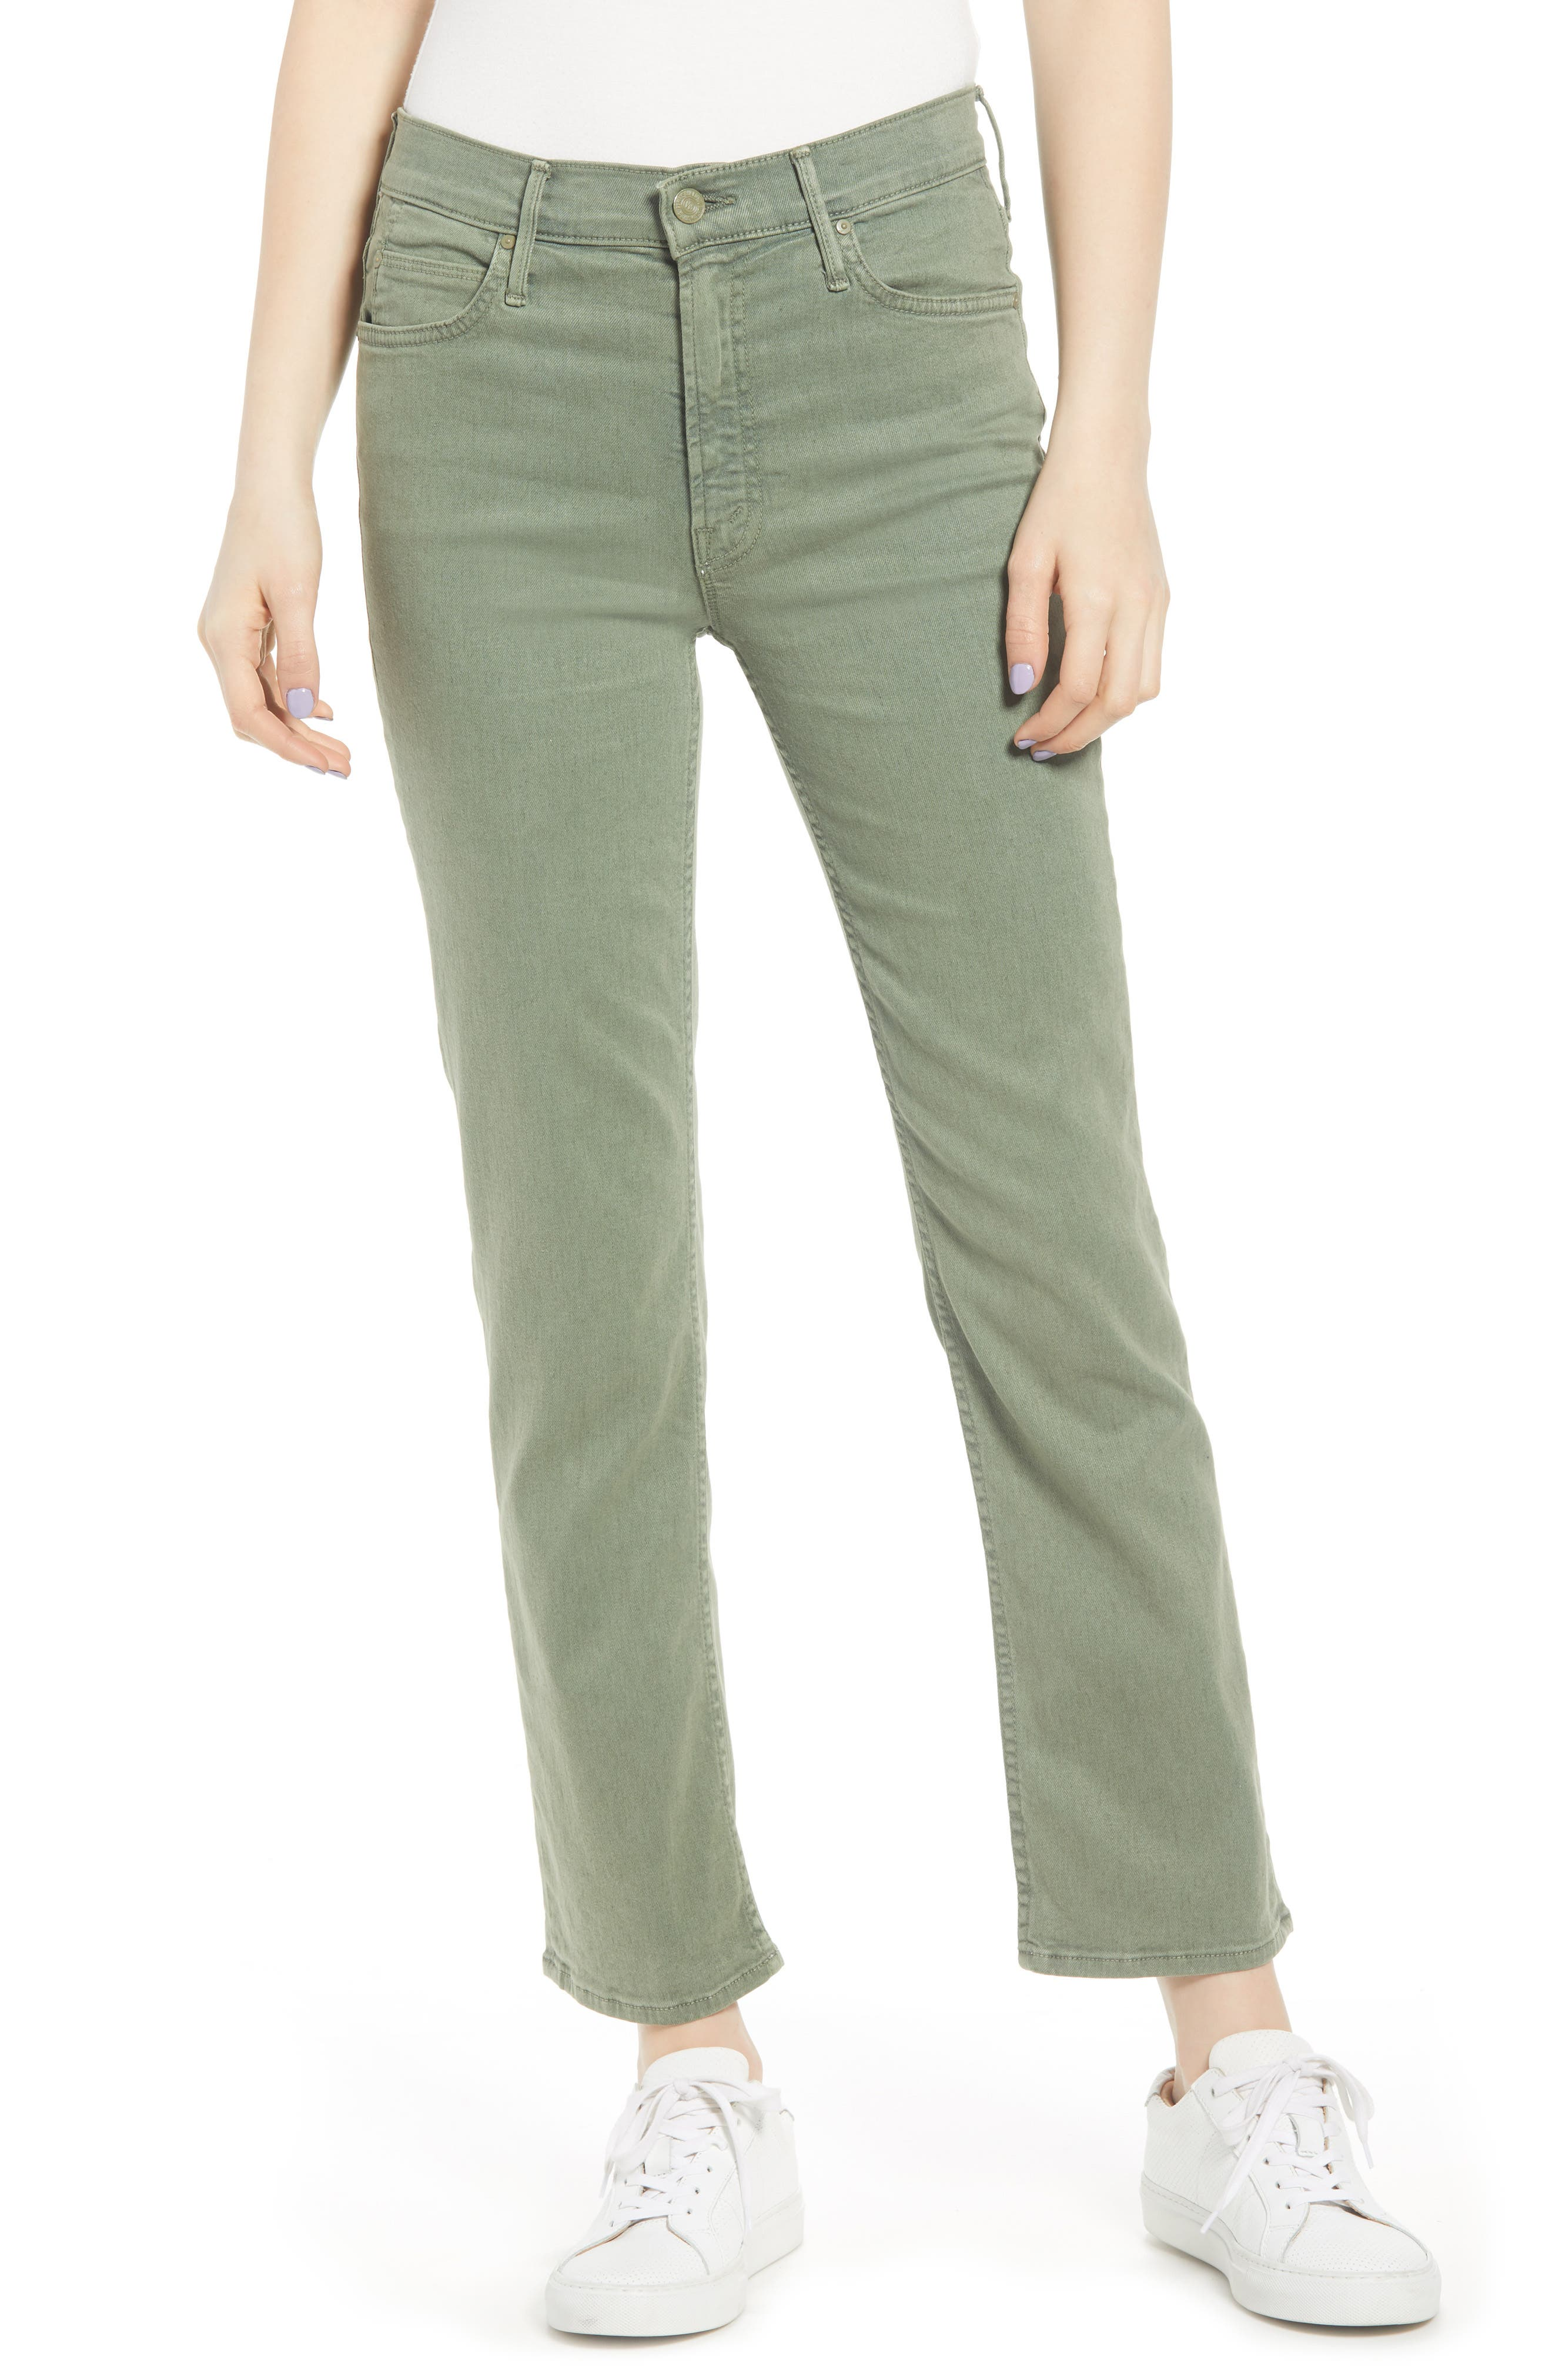 MOTHER, The Dutchie Super High Waist Ankle Straight Leg Jeans, Main thumbnail 1, color, ARMY GREEN